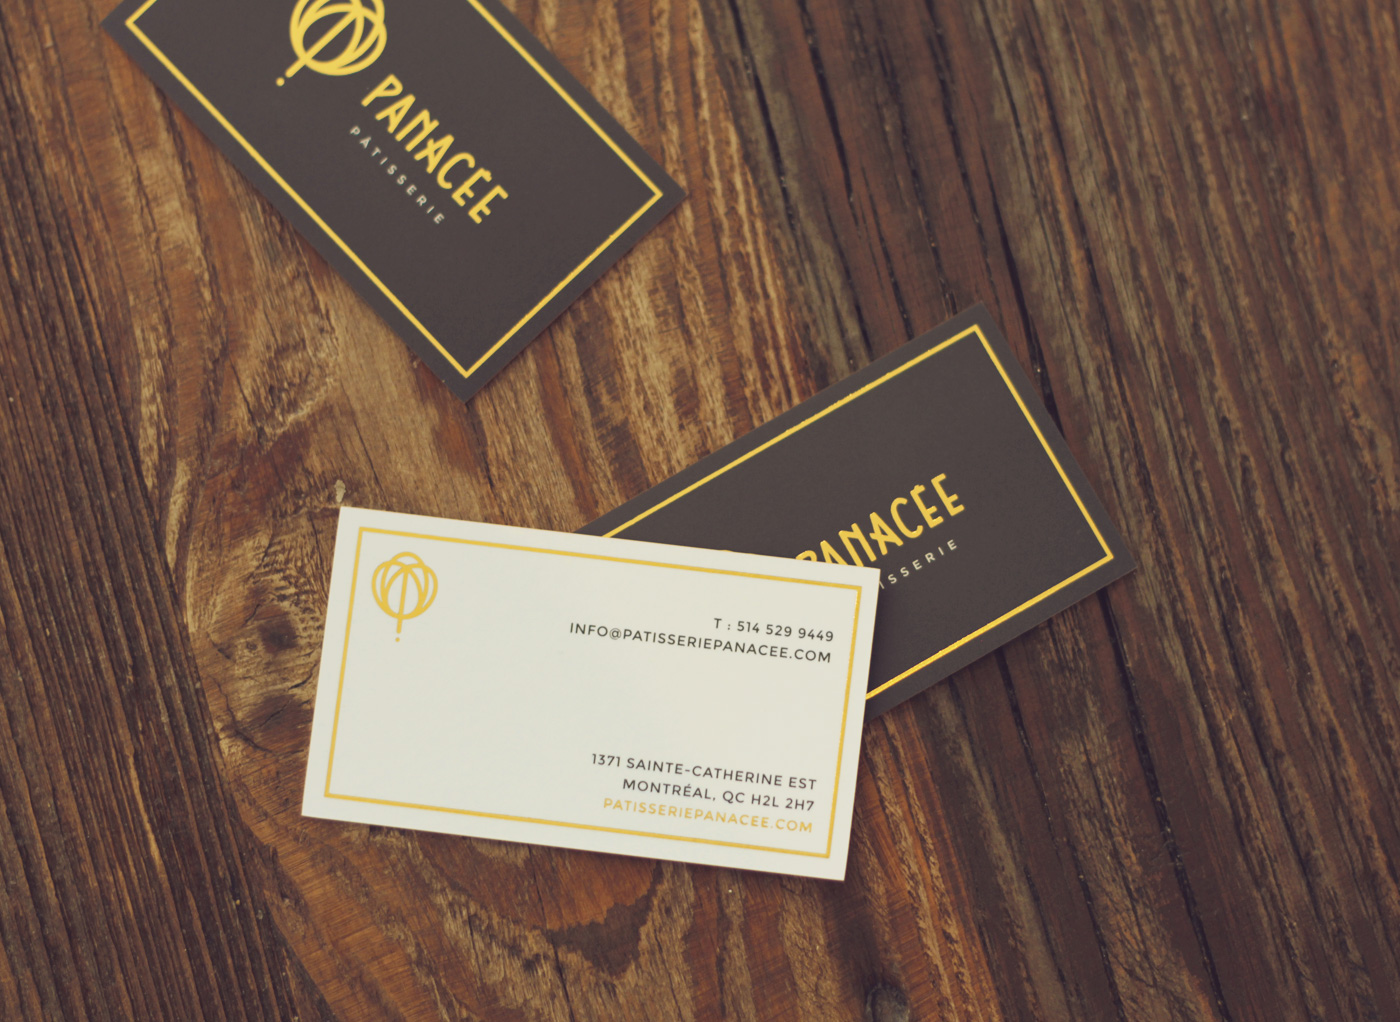 Business Cards design for Panacée